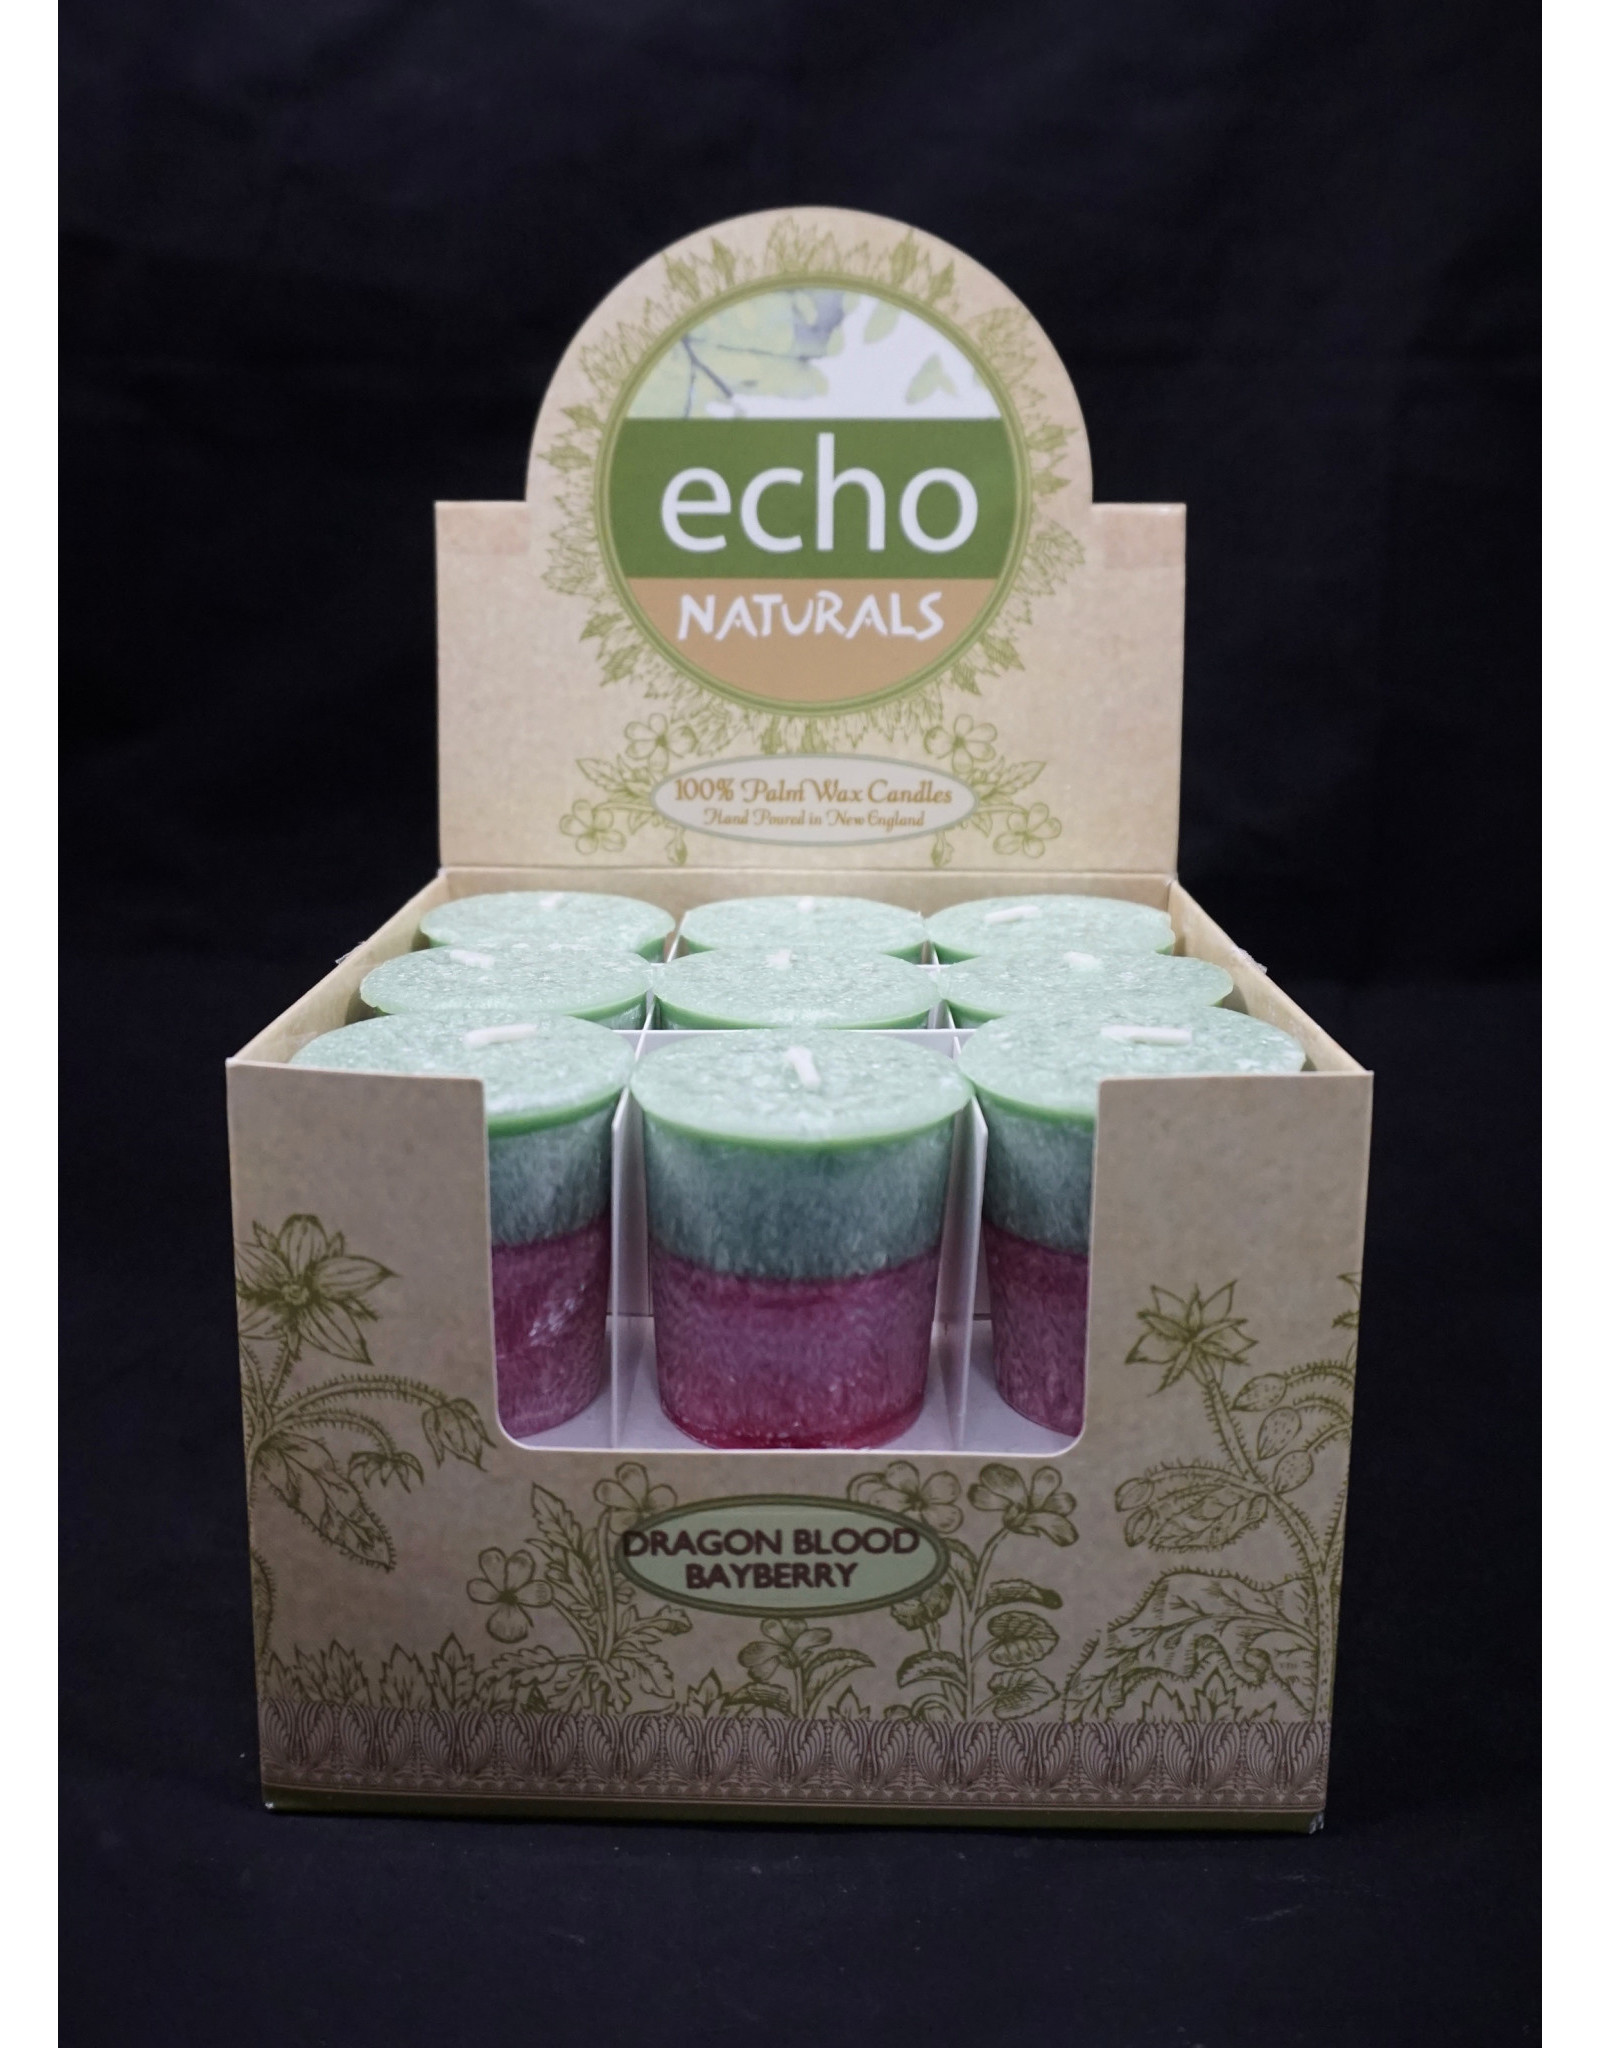 Echo Naturals Votive Candle - Dragon Blood Bayberry